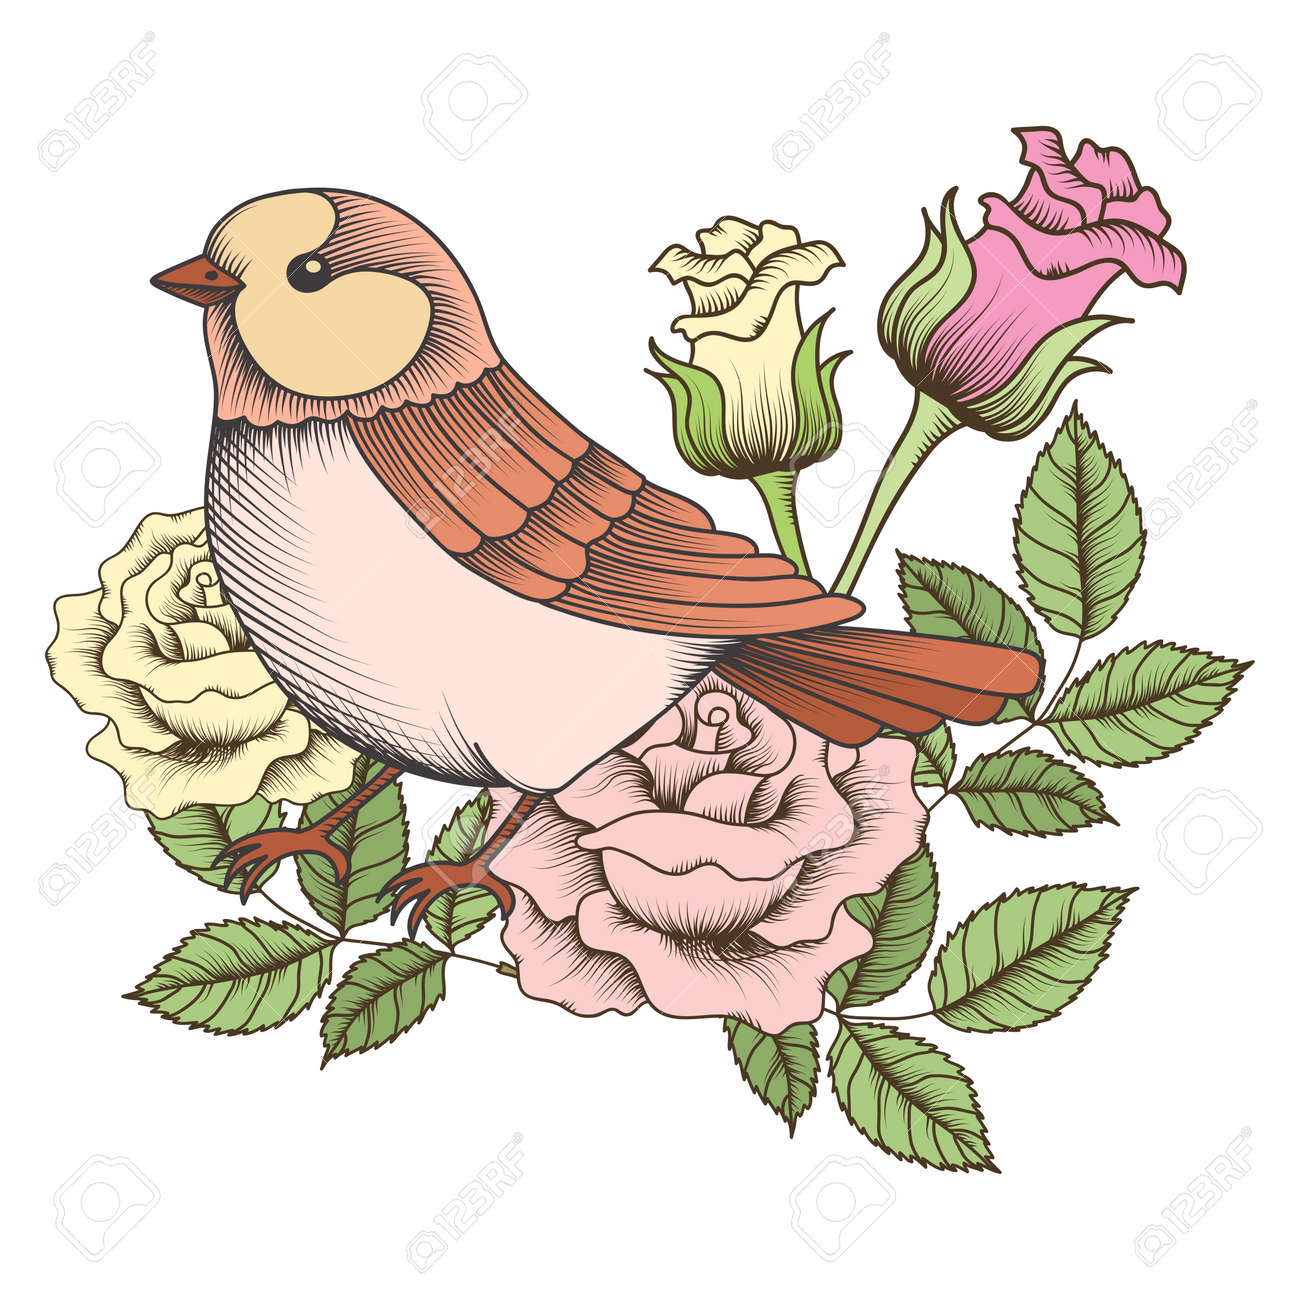 Vector vintage sparrow with rose illustration - 49565922